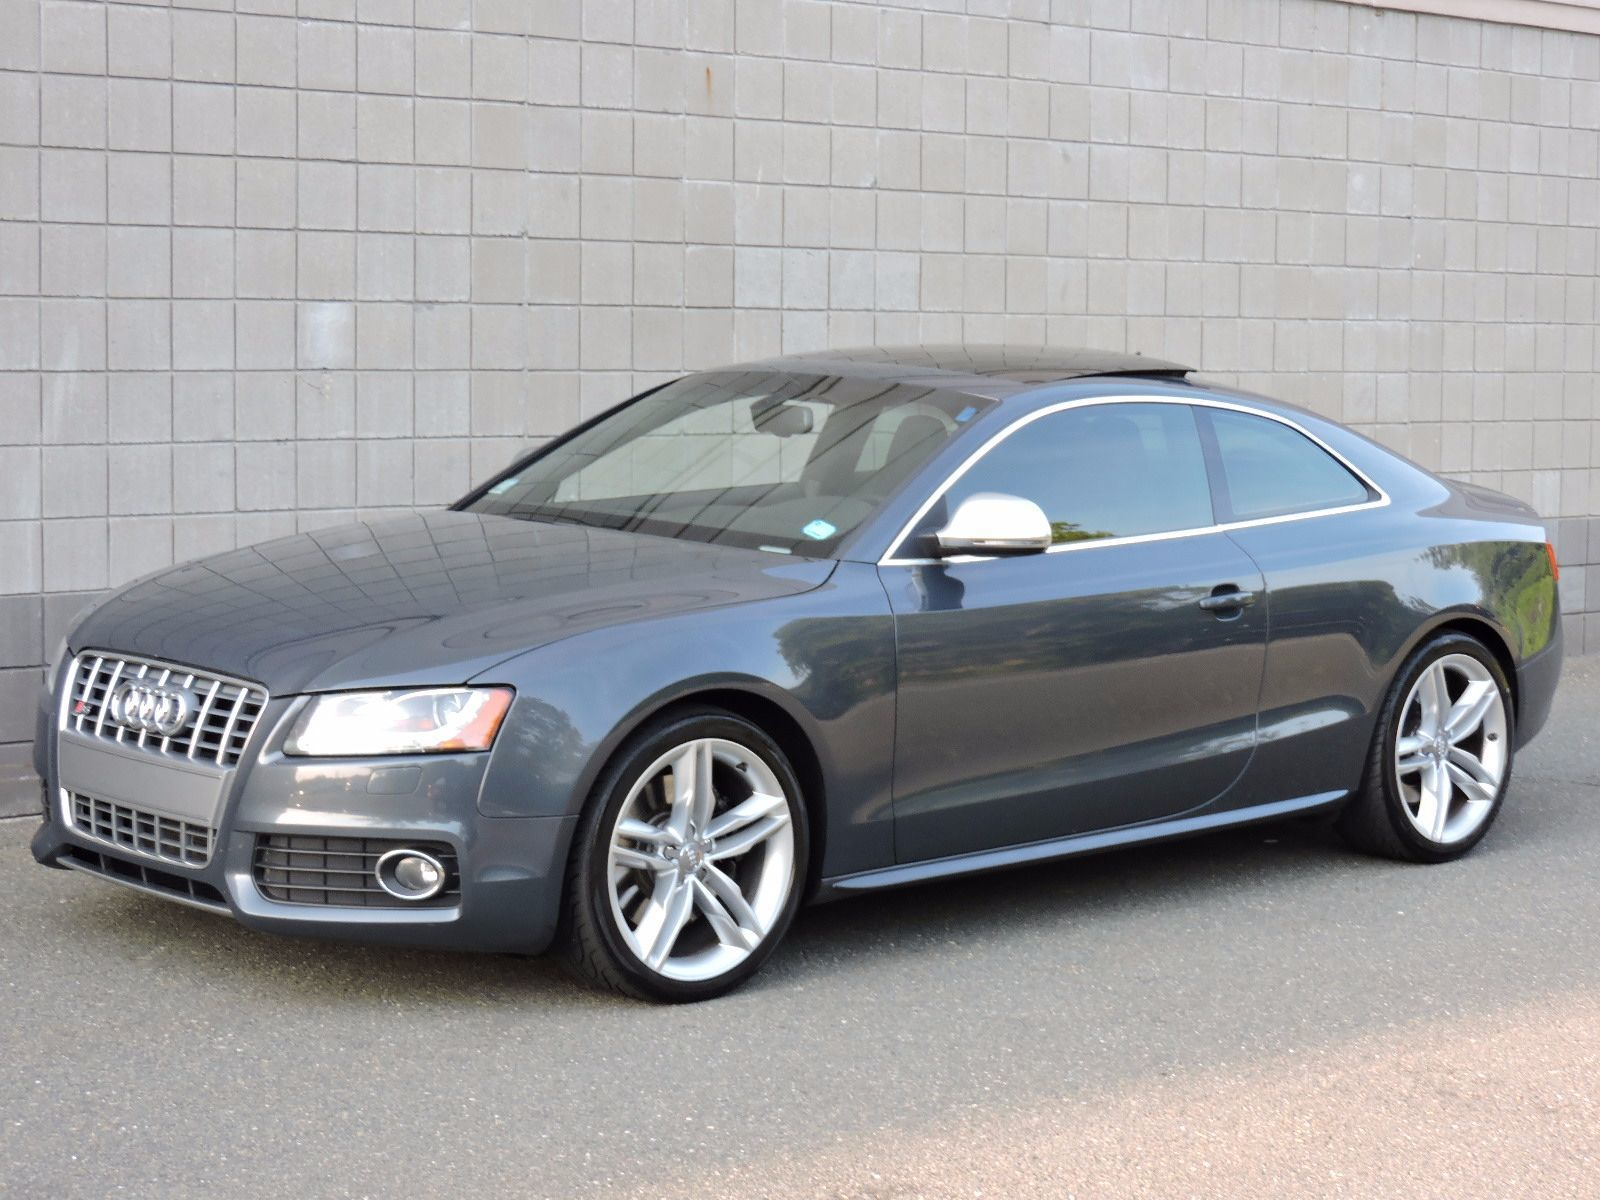 used 2008 audi s5 at auto house usa saugus. Black Bedroom Furniture Sets. Home Design Ideas